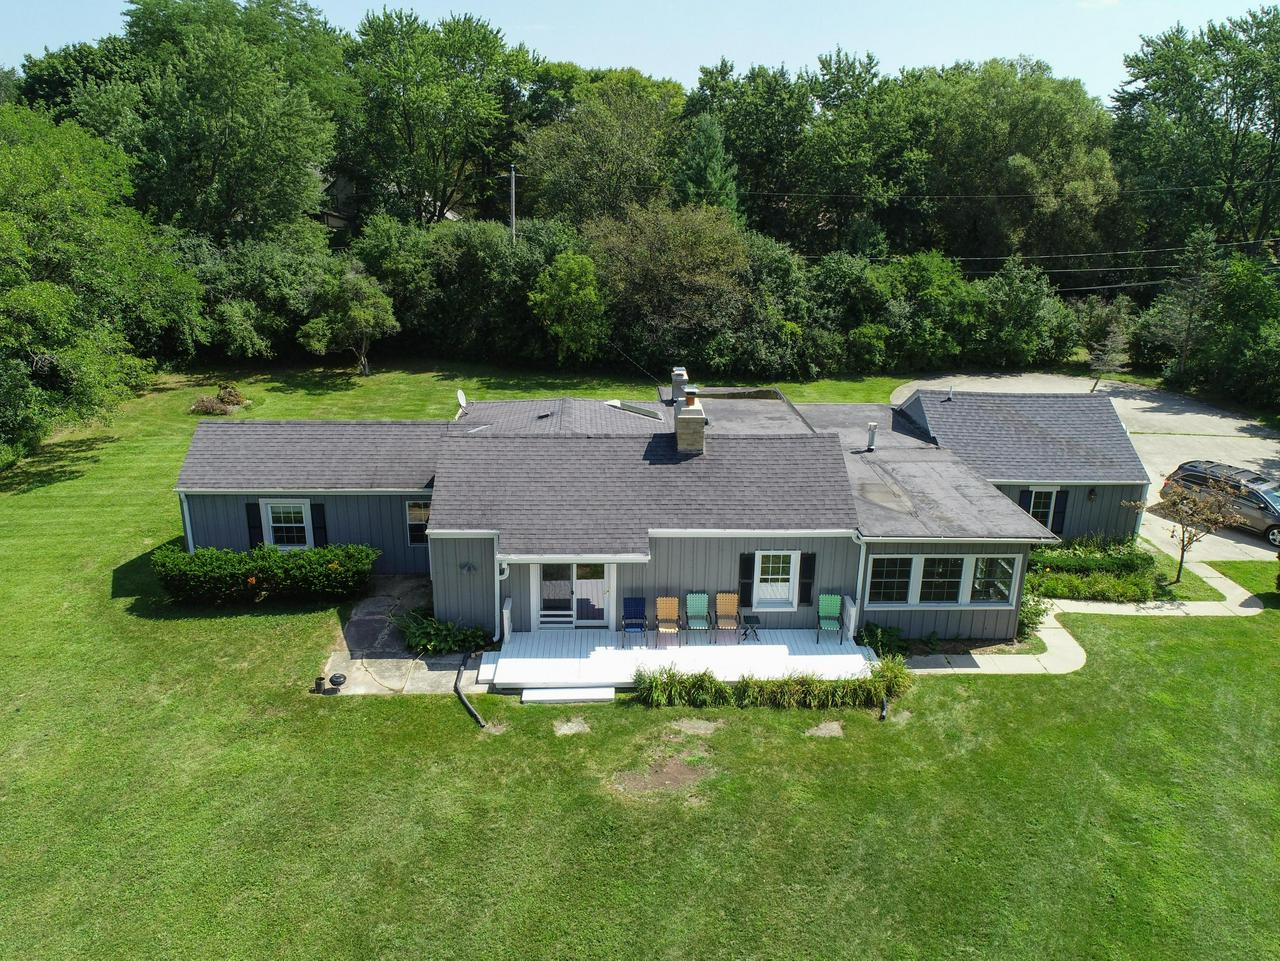 Fabulous opportunity to own a 3 bedroom 2 bath ranch on almost a 2 acre lot. Cozy up around the natural fireplace in the living room or enjoy family gatherings around the gas fireplace in the family room. Nice bright open kitchen giving off that farm house feeling. Beautiful pine flooring in the living room and kitchen. Situated over looking the Ozaukee Country Club with a Western sunset, relish evenings on the front porch. You will enjoy all that this stairless ranch has to offer. Seller has done many updates to this home. Or if your looking to build your dream home this 2 acre lot is perfect !